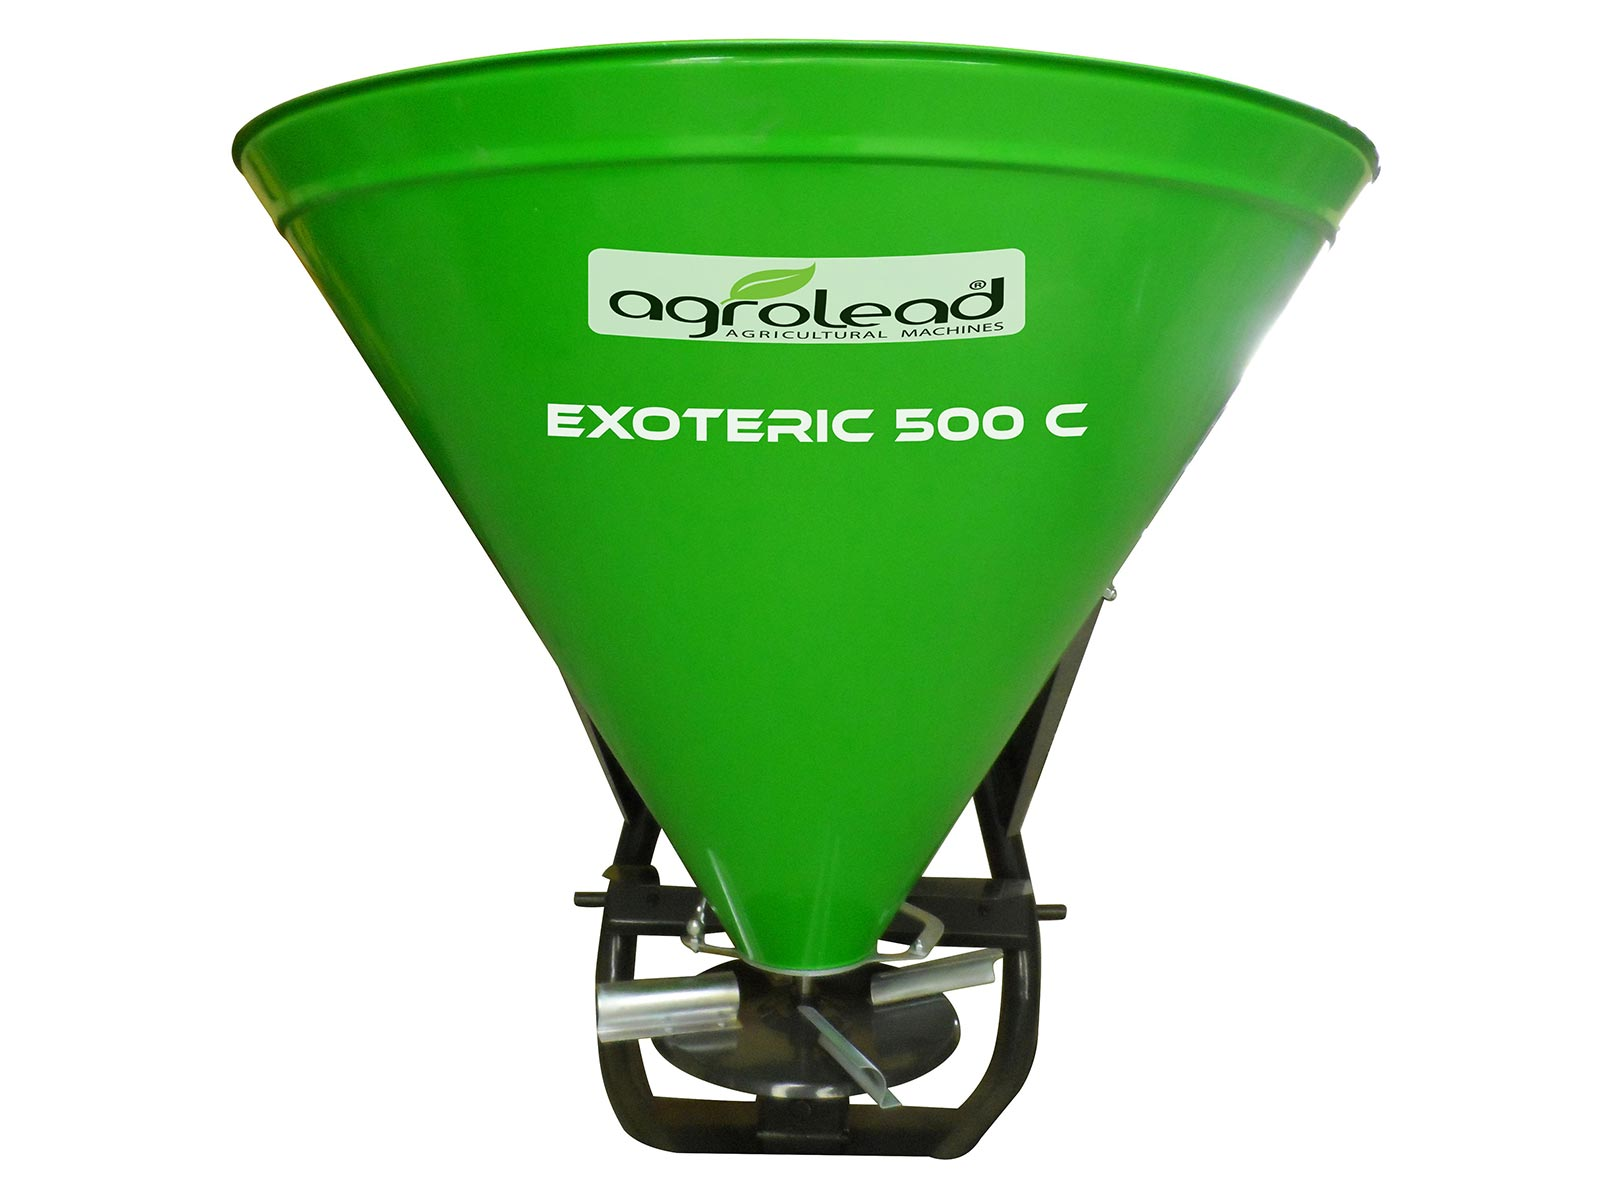 Exoteric Centrifugal Fertilizer Spreader